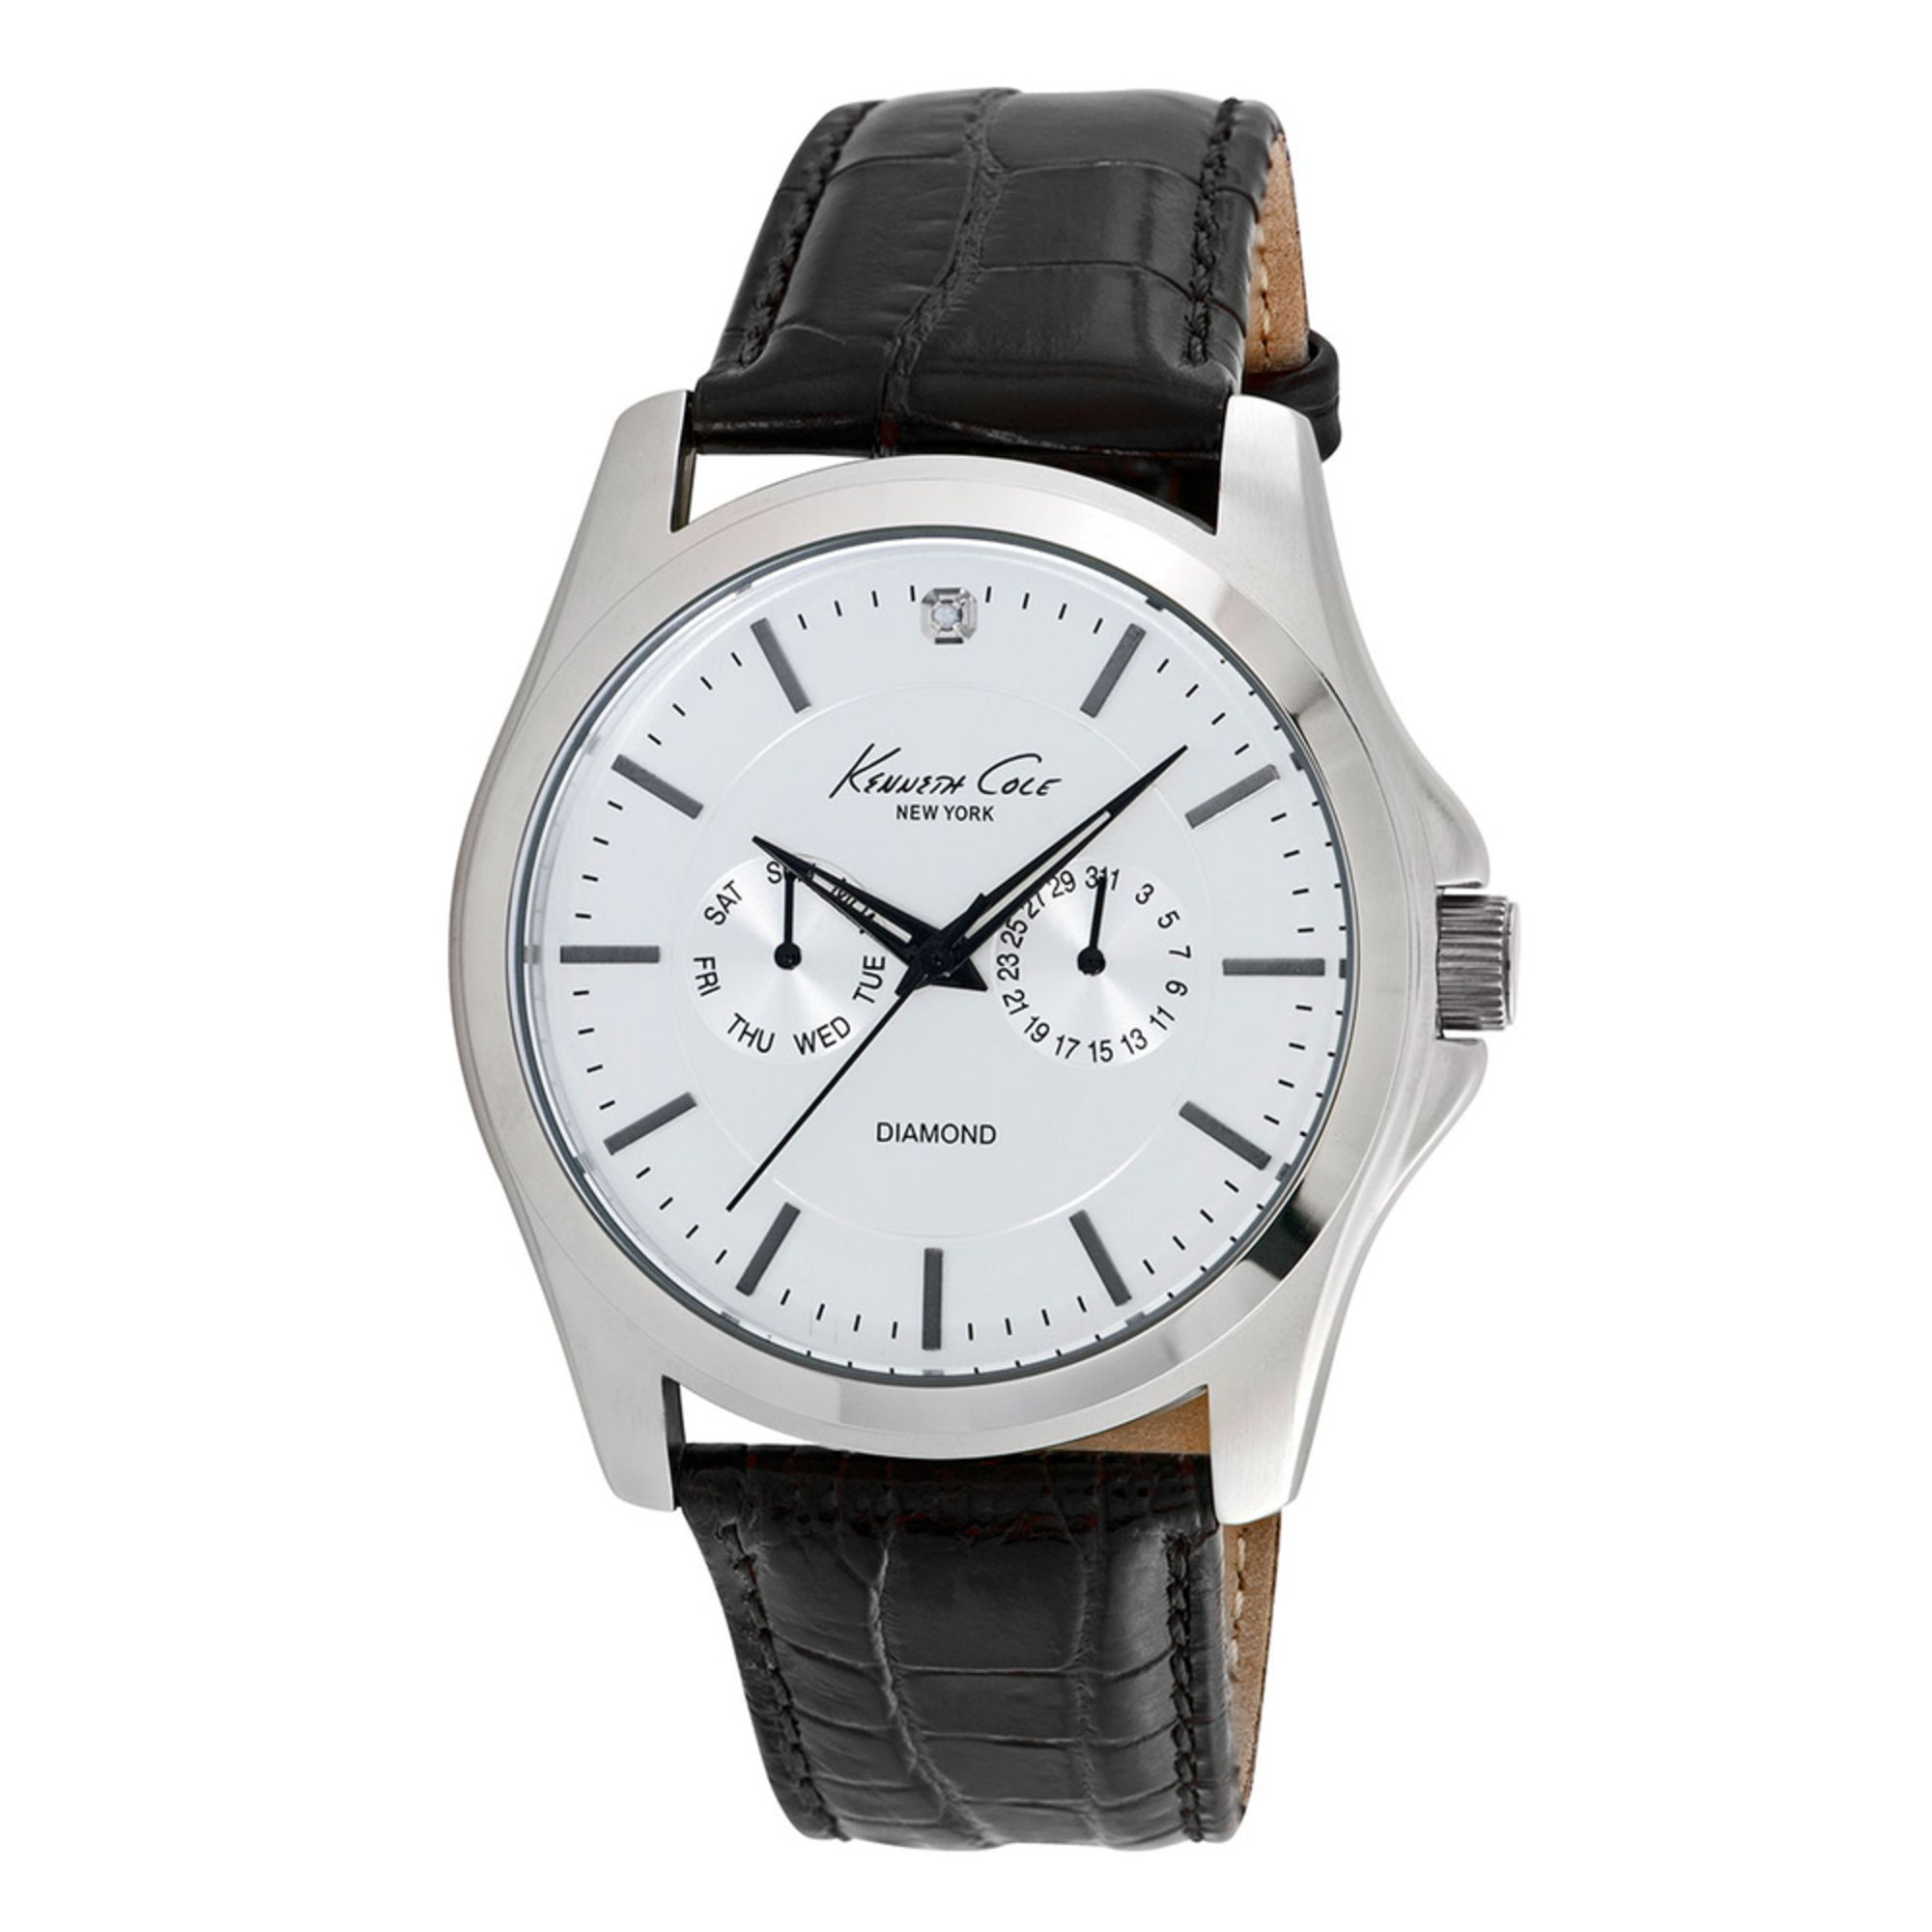 kenneth cole connect watch instructions